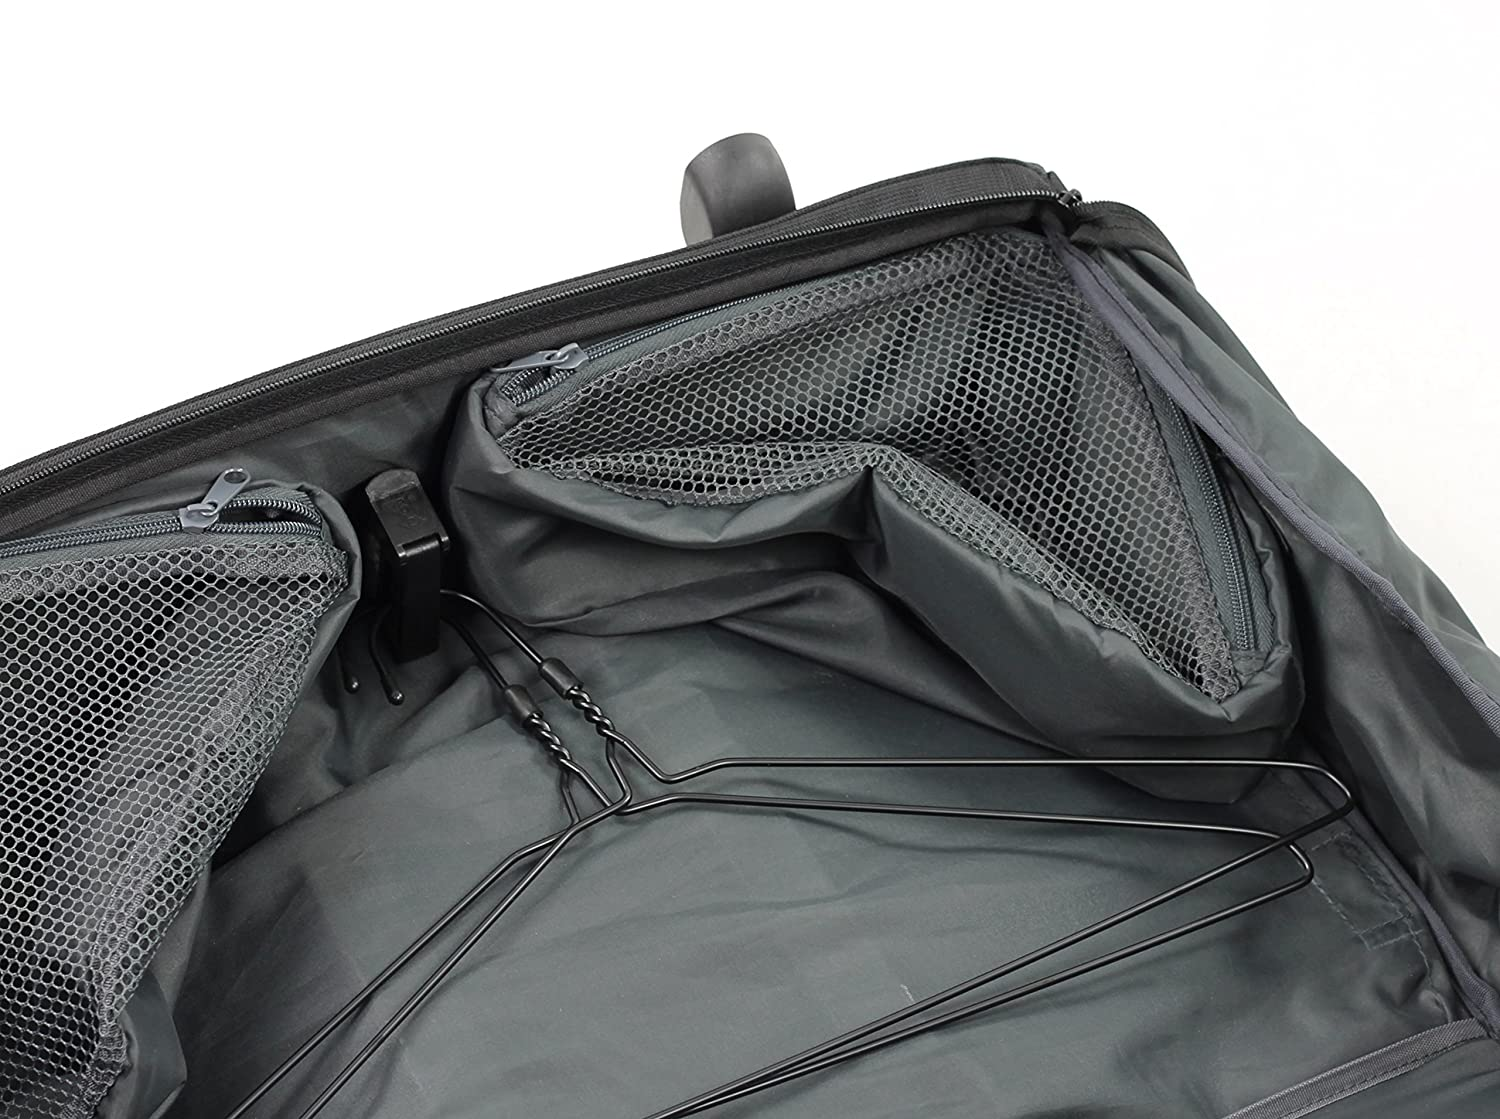 carrier on wheels. rock carry-on tri-fold garment carrier on wheels with removable laptop sleeve: amazon.co.uk: luggage